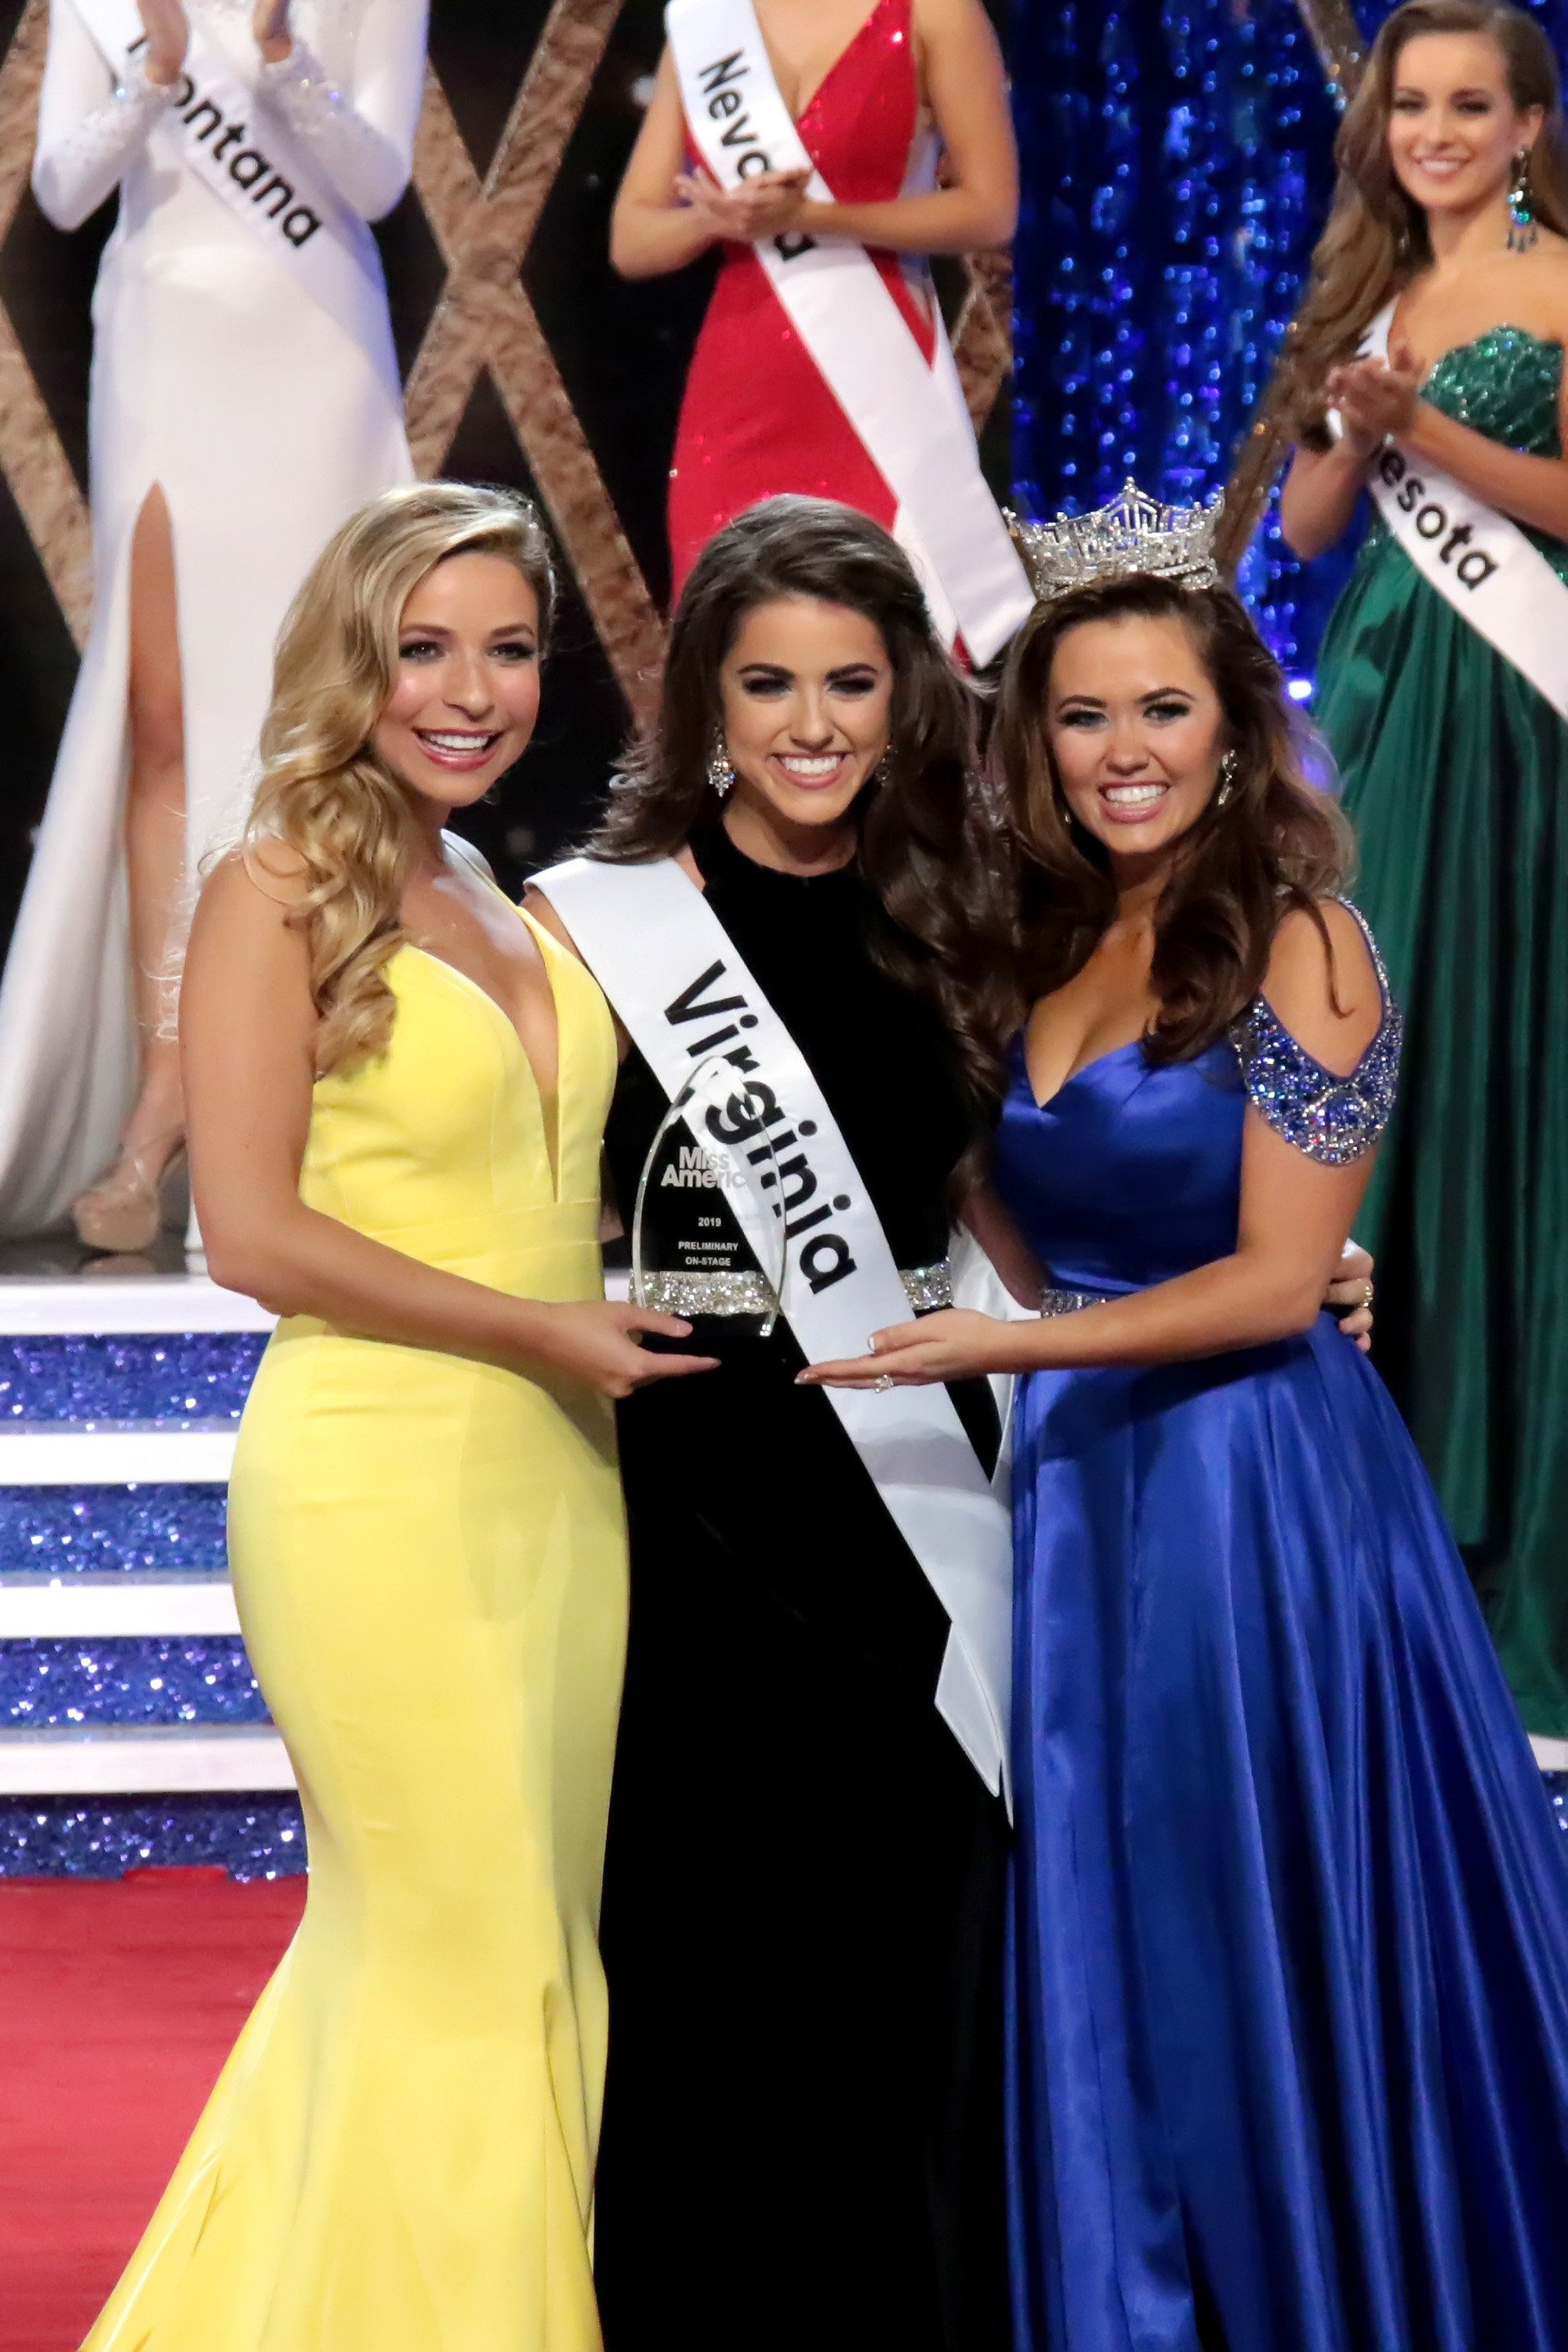 ATLANTIC CITY, NJ - SEPTEMBER 06:  Kira Kazantsev, Miss America 2015, Miss Virginia, Emili McPhail winner of On Stage Question and Cara Mund 2018 the 2nd Night of Preliminaries of the Miss America 2.0 competition at Atlantic City Boardwalk Hall on September 6, 2018 in Atlantic City, New Jersey.  (Photo by Donald Kravitz/Getty Images)